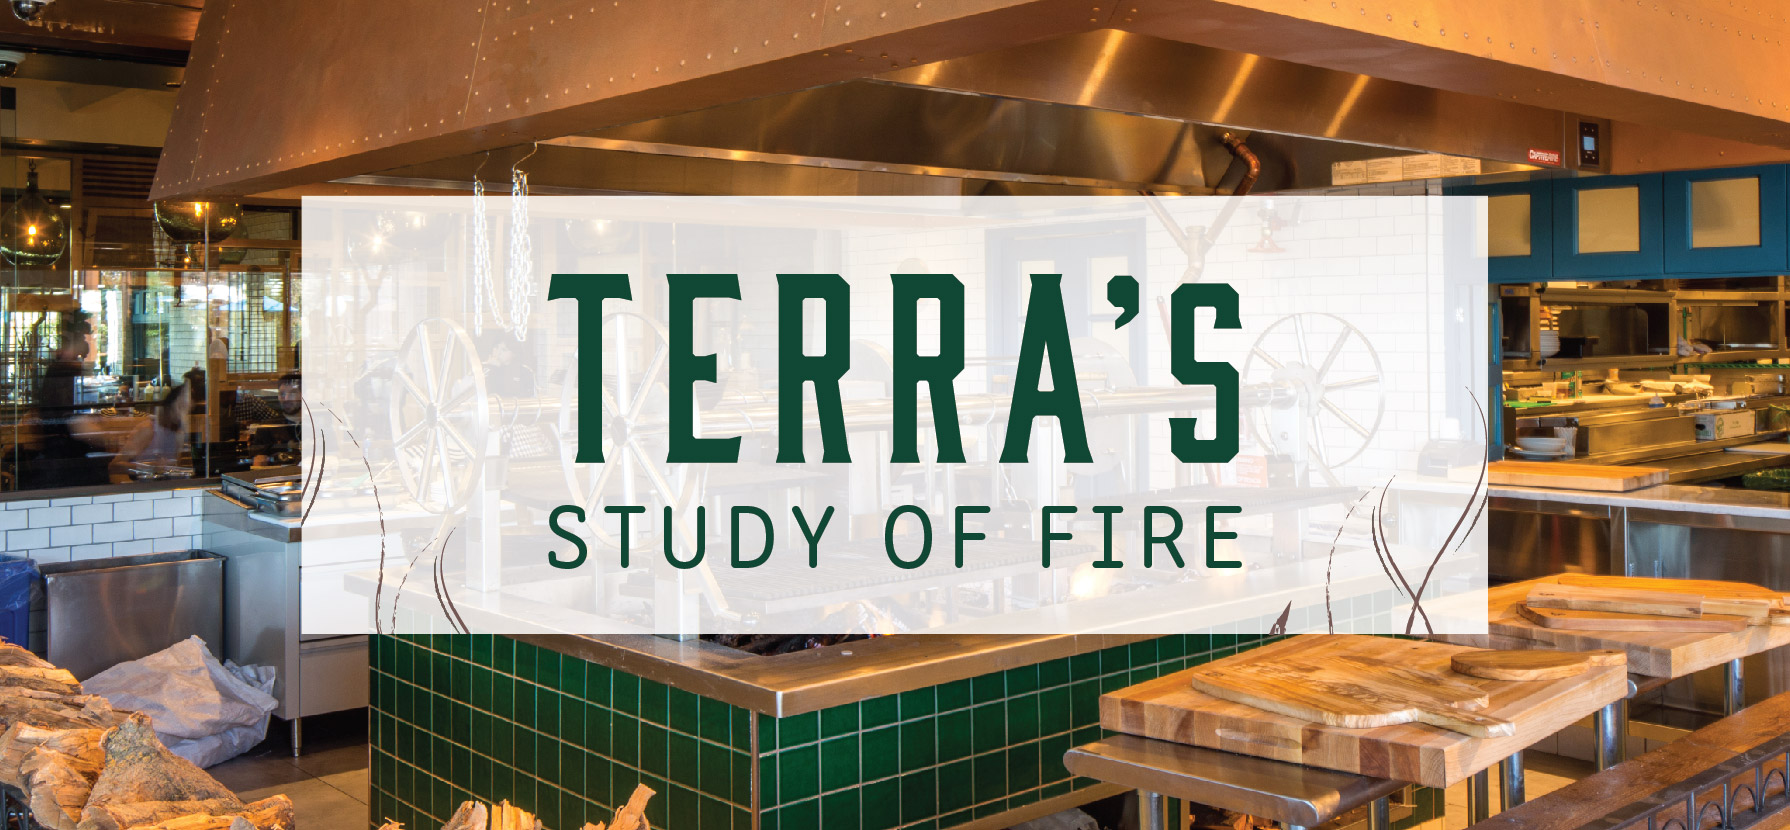 A Study of Fire at Terra